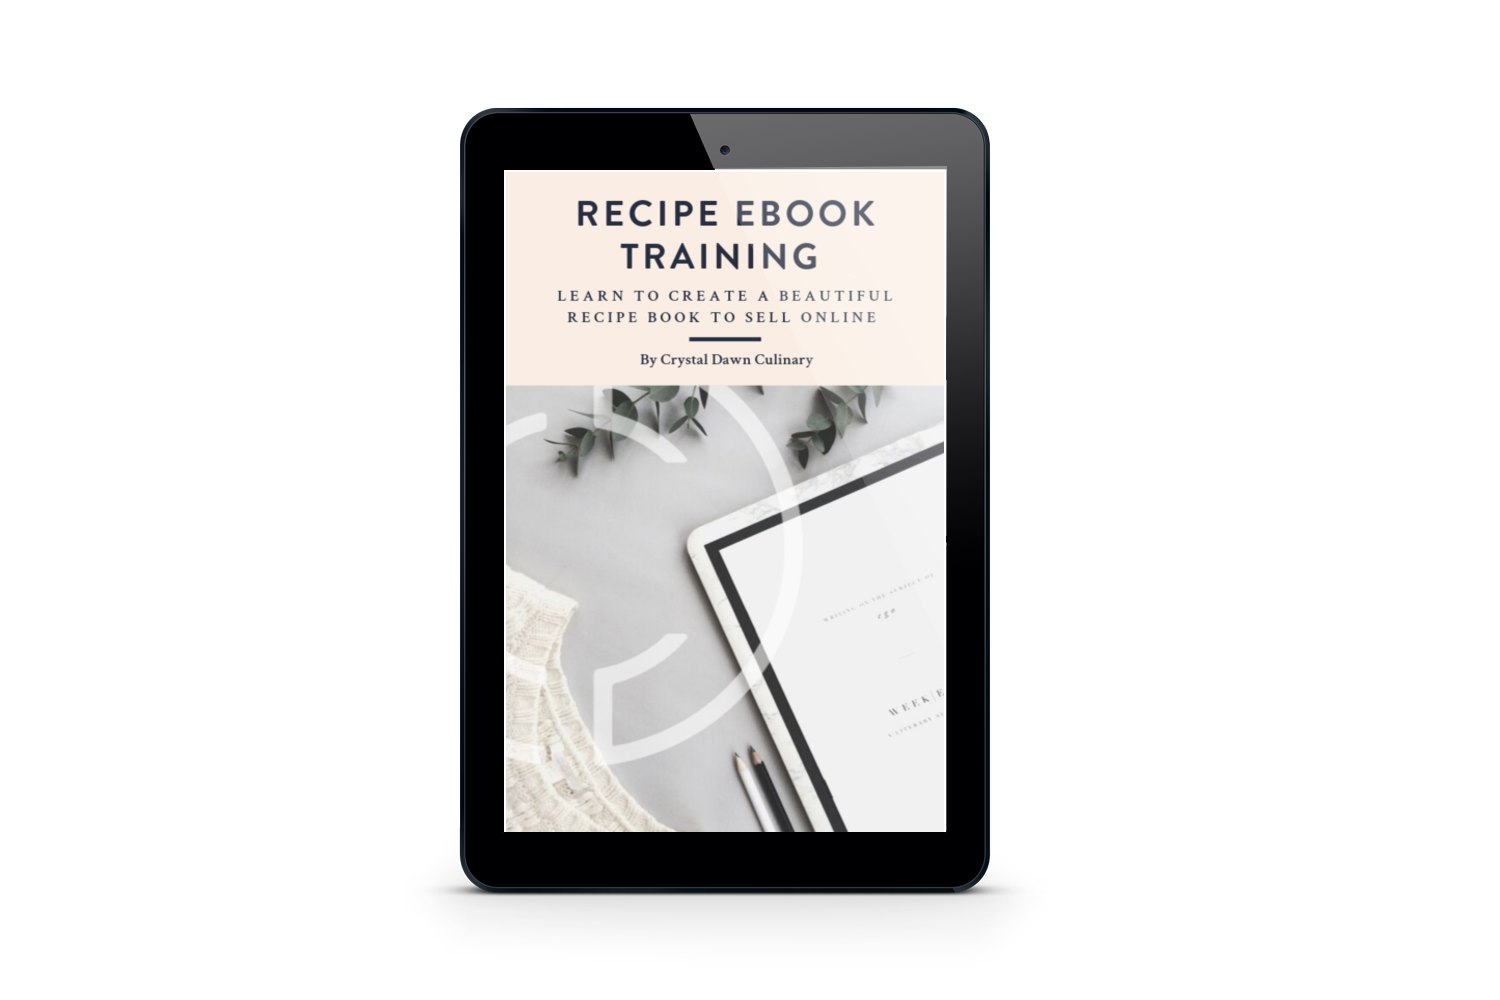 Recipe Ebook Training